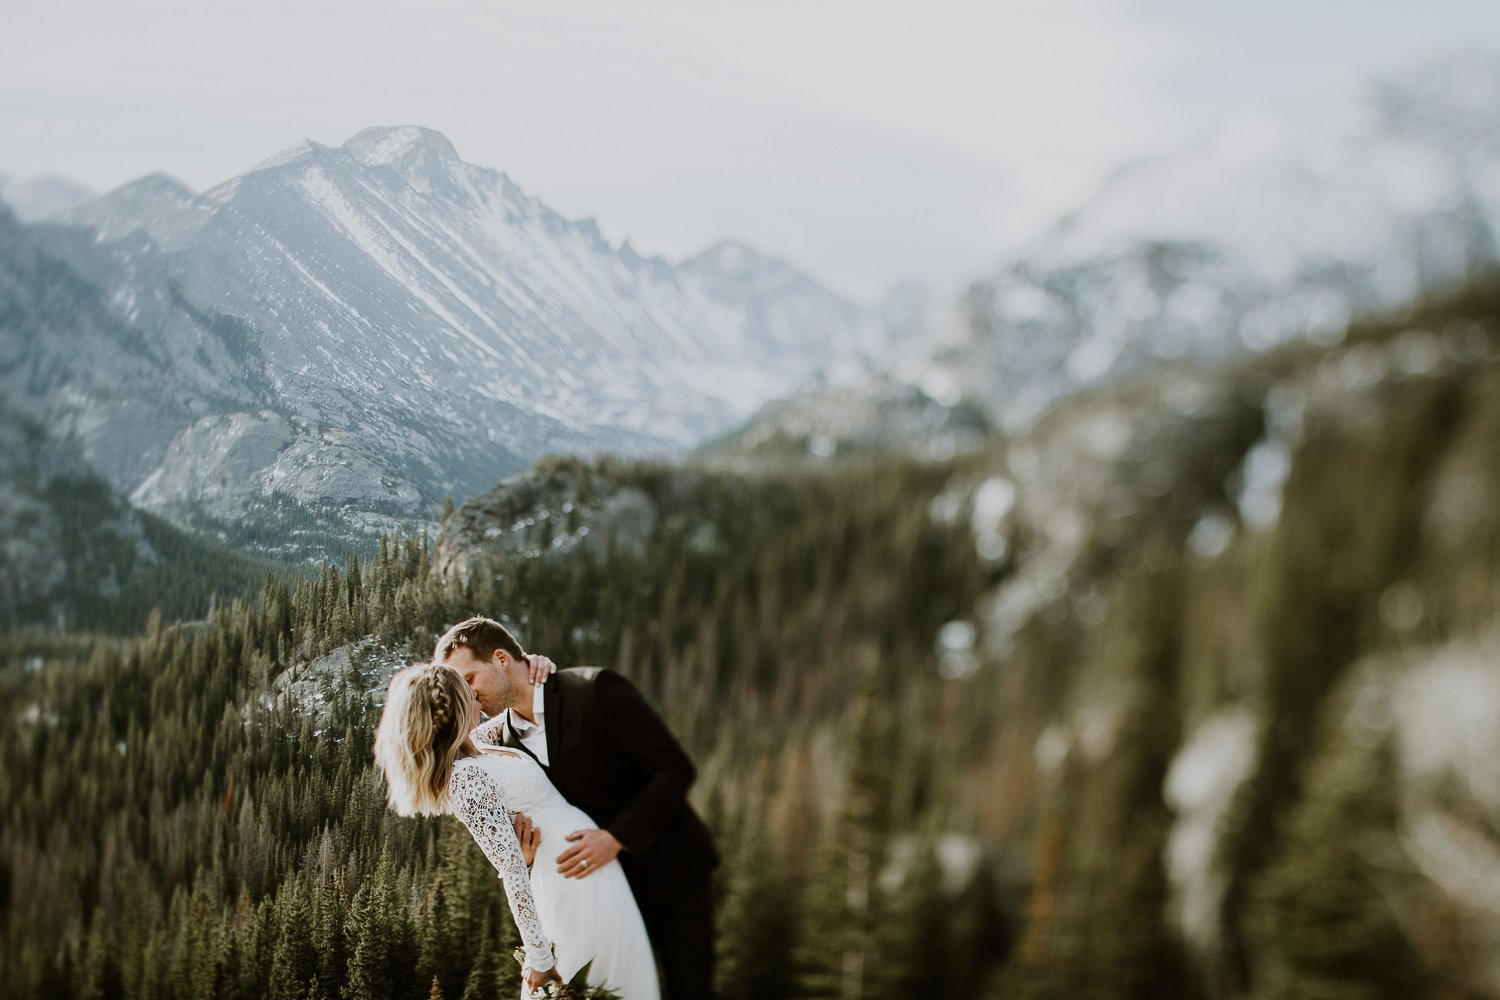 Colorado Intimate Wedding and Adventurous Elopement Photographer, Justyna E Butler, Rocky Mountain National Park Wedding Photographer